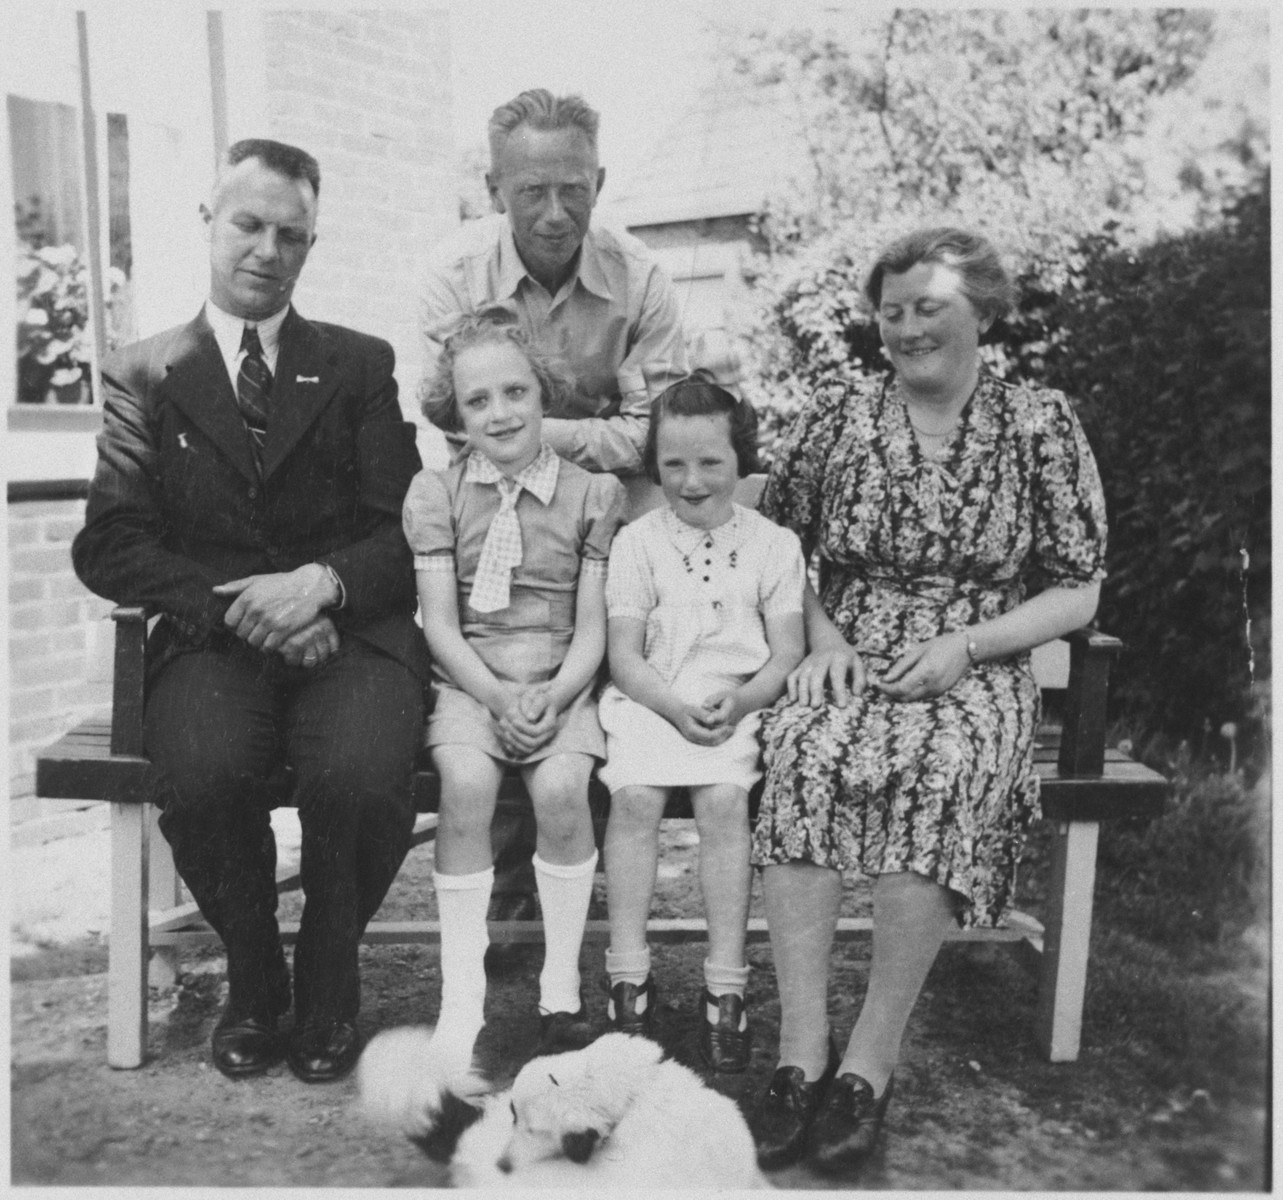 A Jewish father reunites with his daughter at the home of her rescuers shortly after the end of the war.    Seated from left to right are Dirk Hellinga, Janny Sluimer, Meip van Engel and Sjoukje Hellinga. Bernard van Engel is standing behind them.